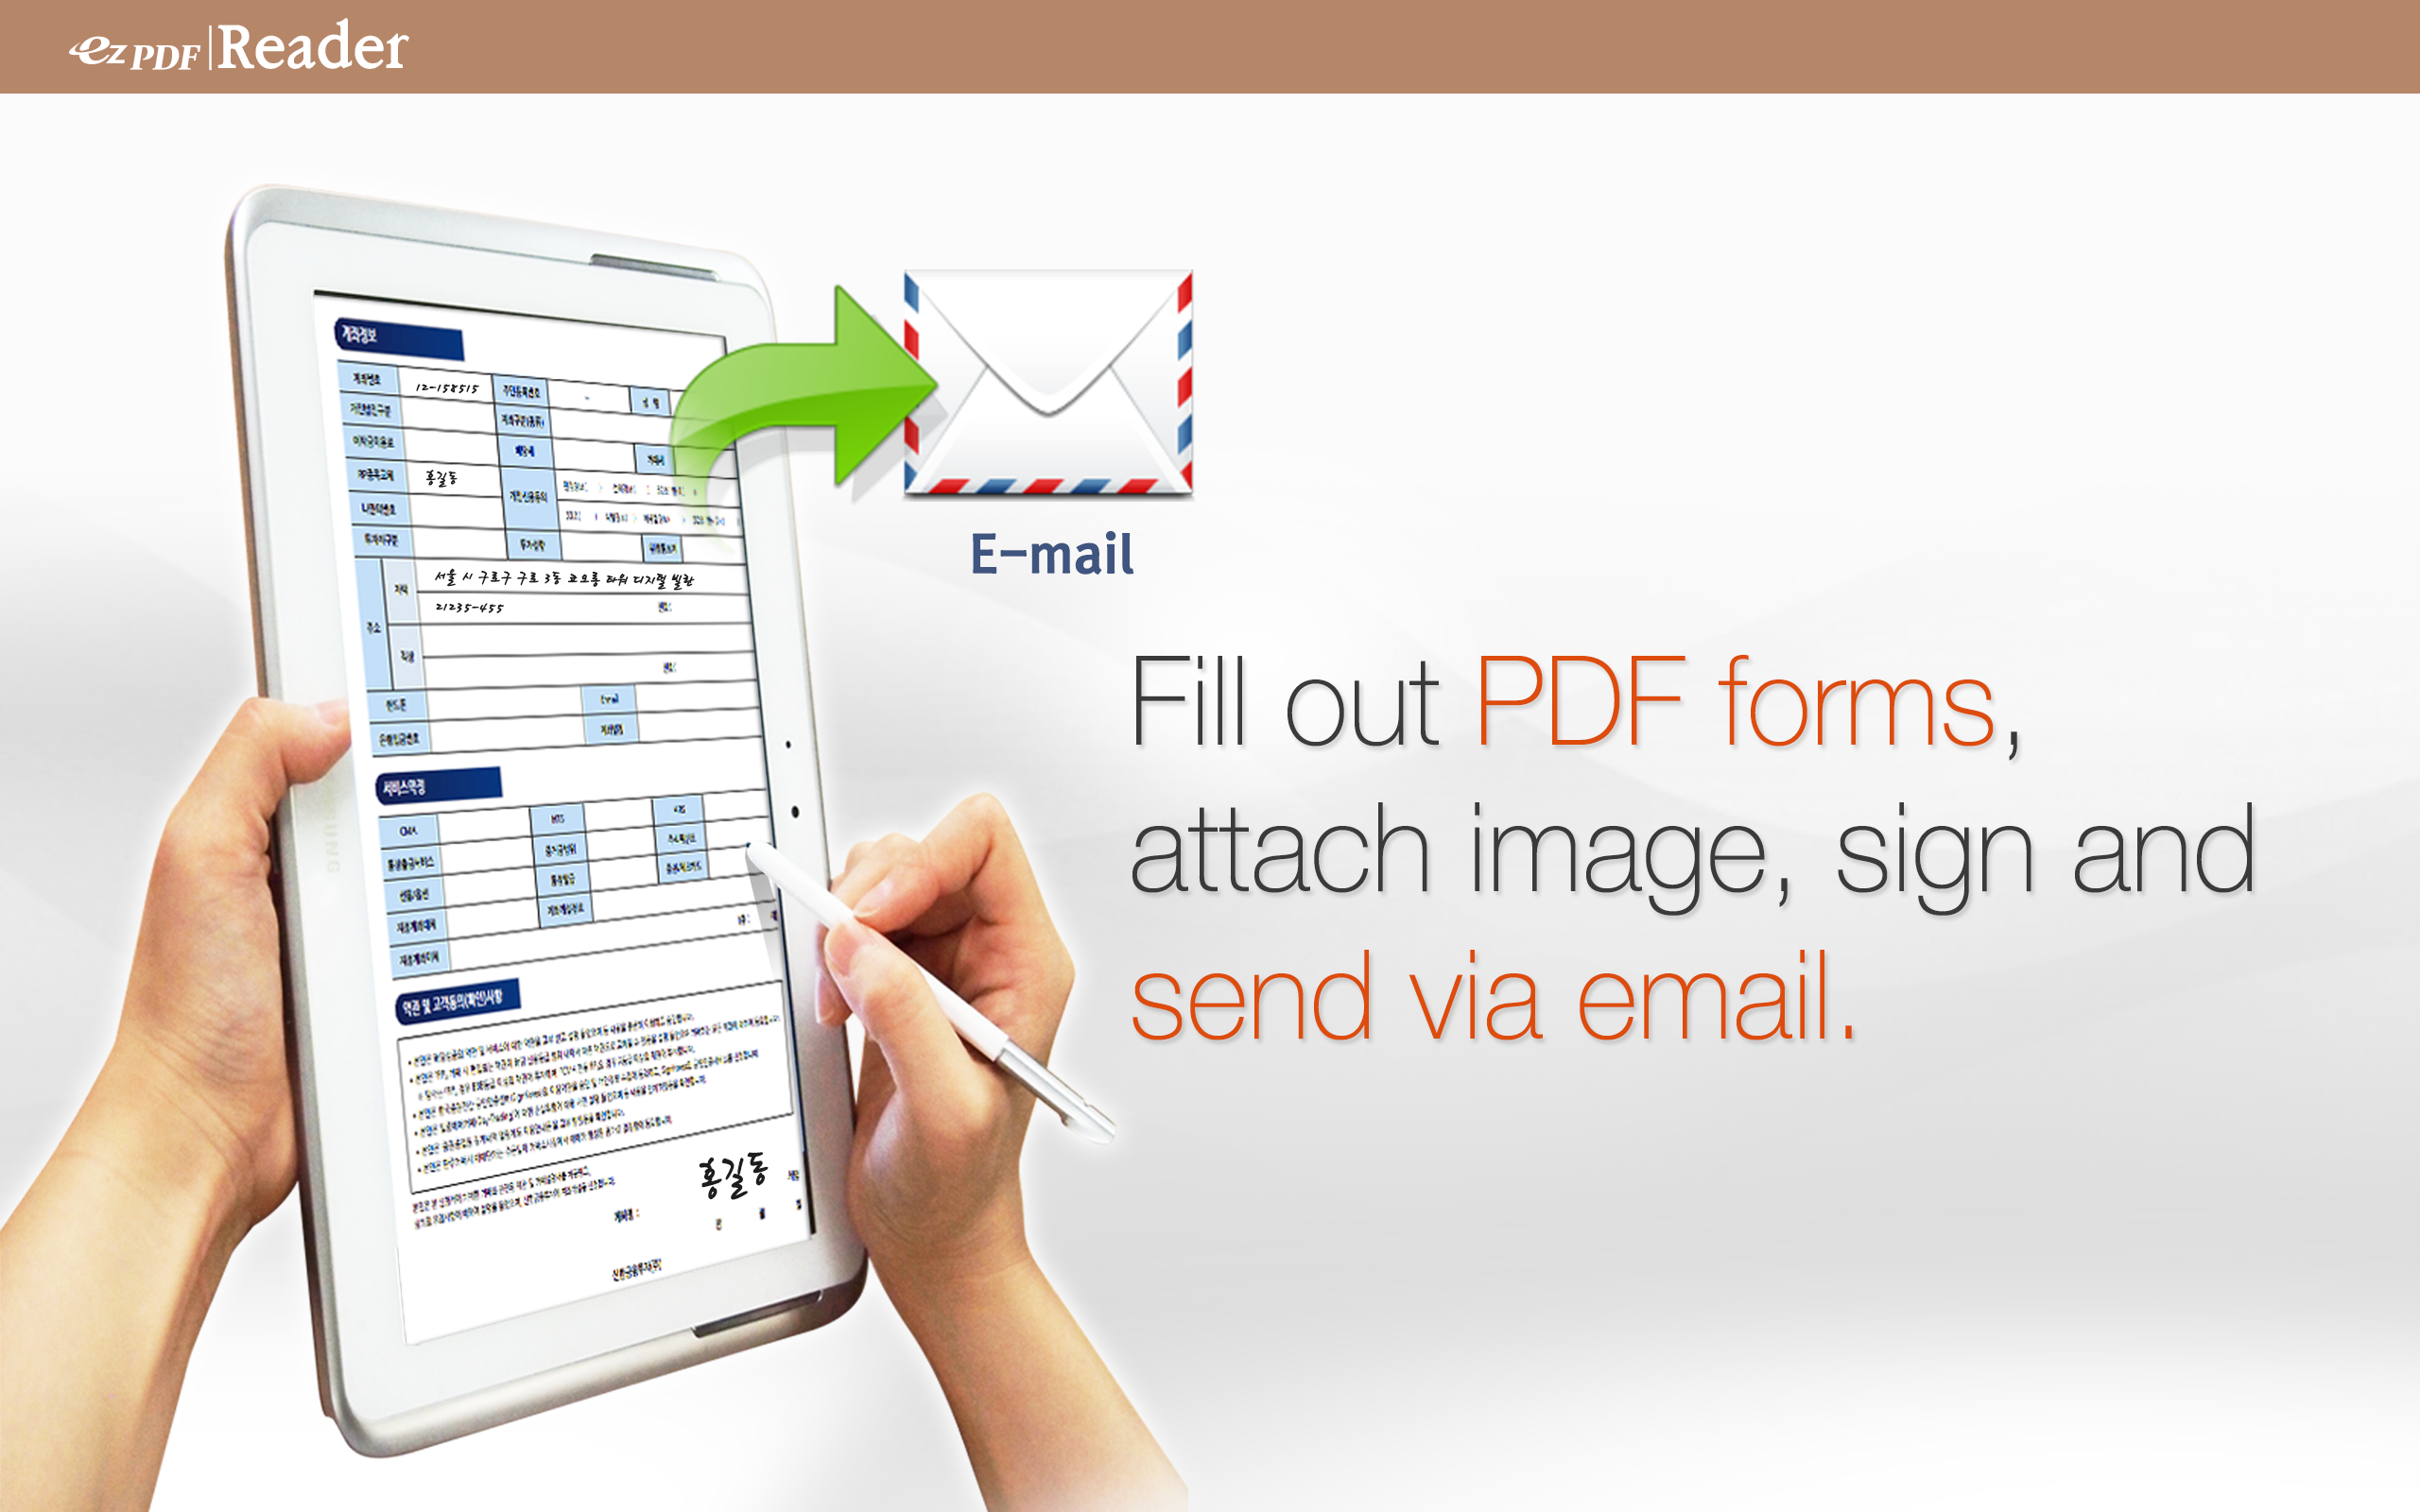 Amazon ezpdf reader pdf annotate form appstore for android fandeluxe Gallery